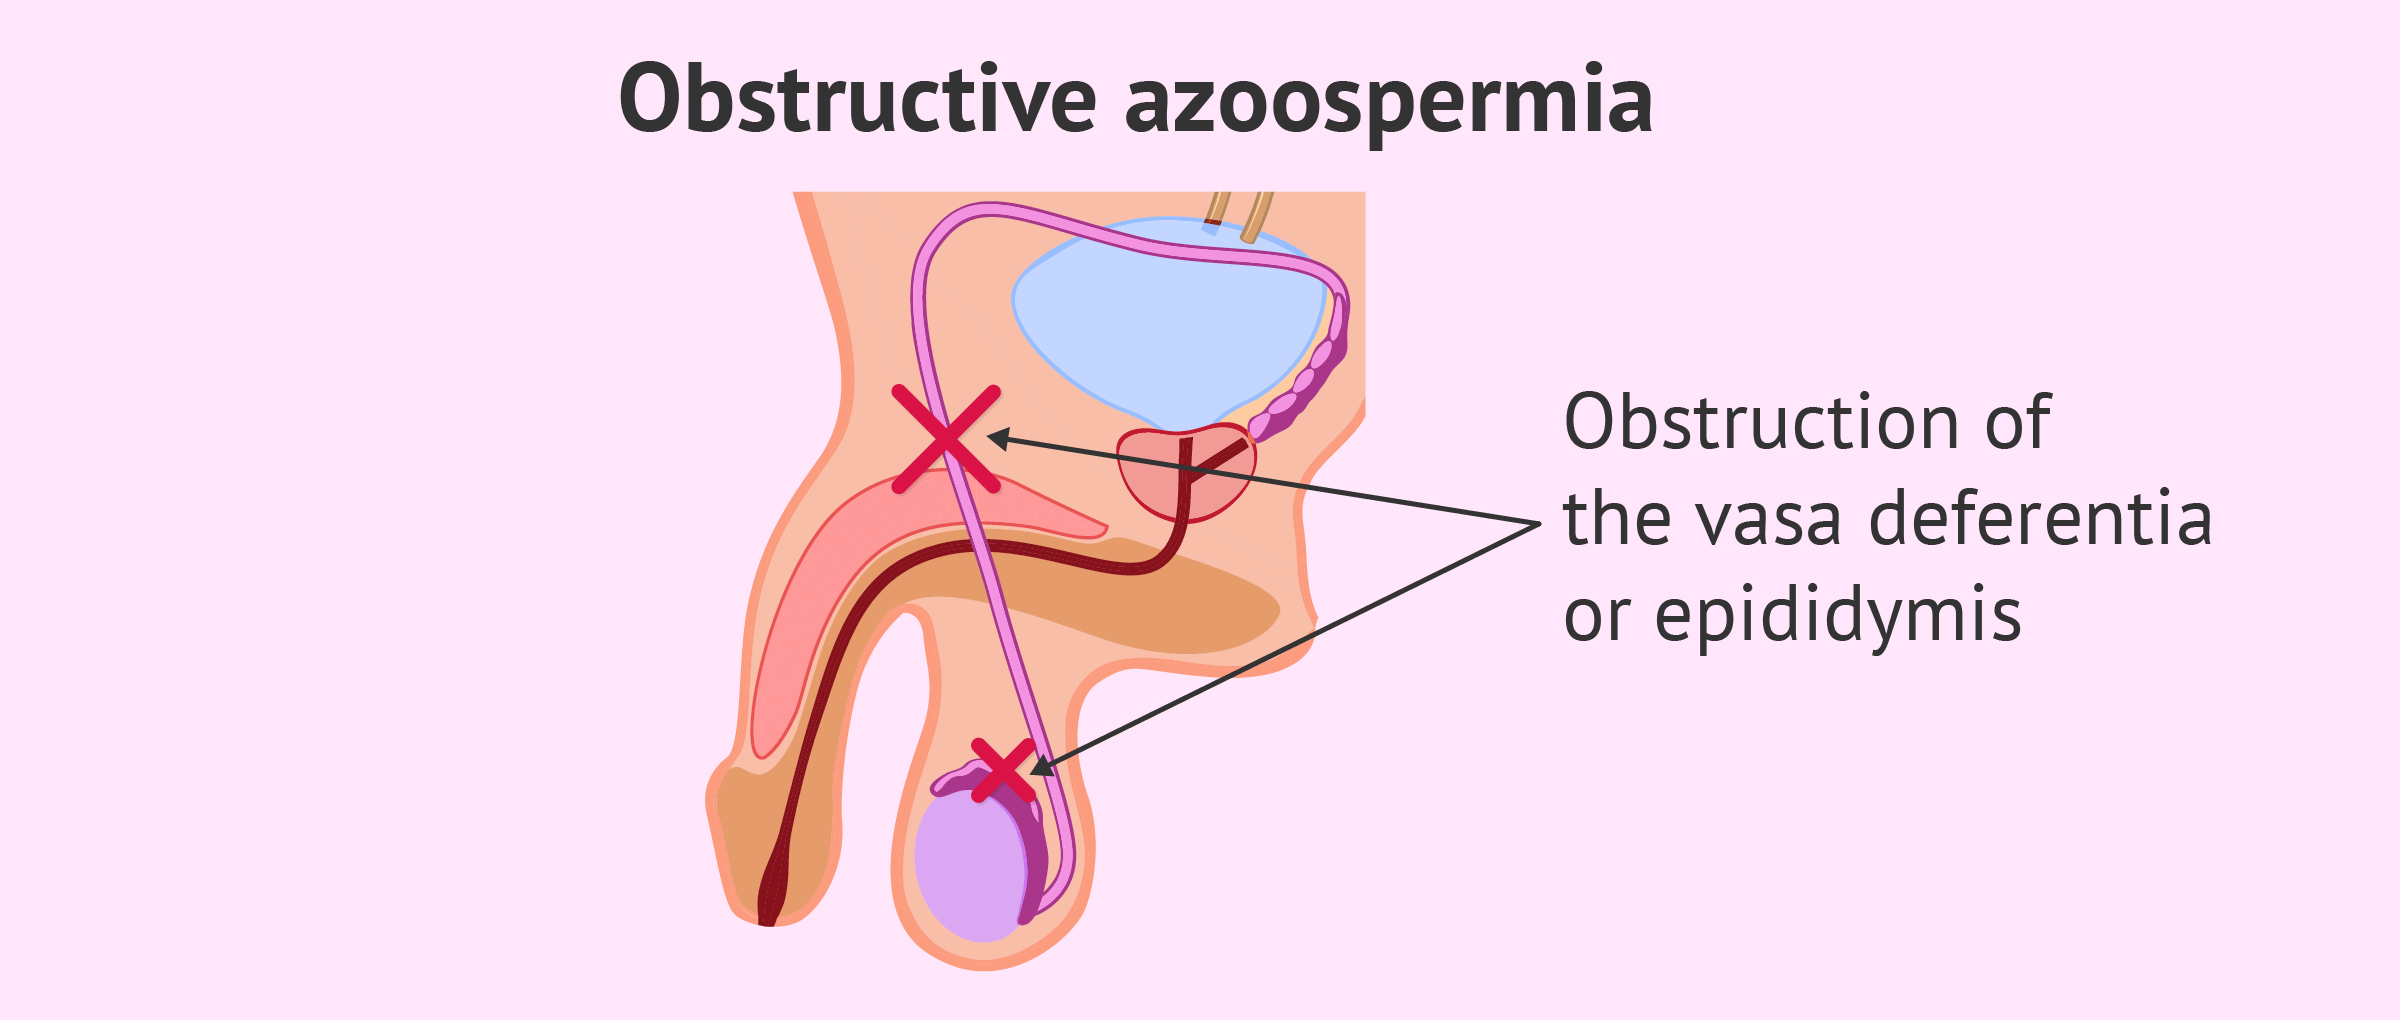 Obstructive azoospermia due to ejaculatory duct obstruction